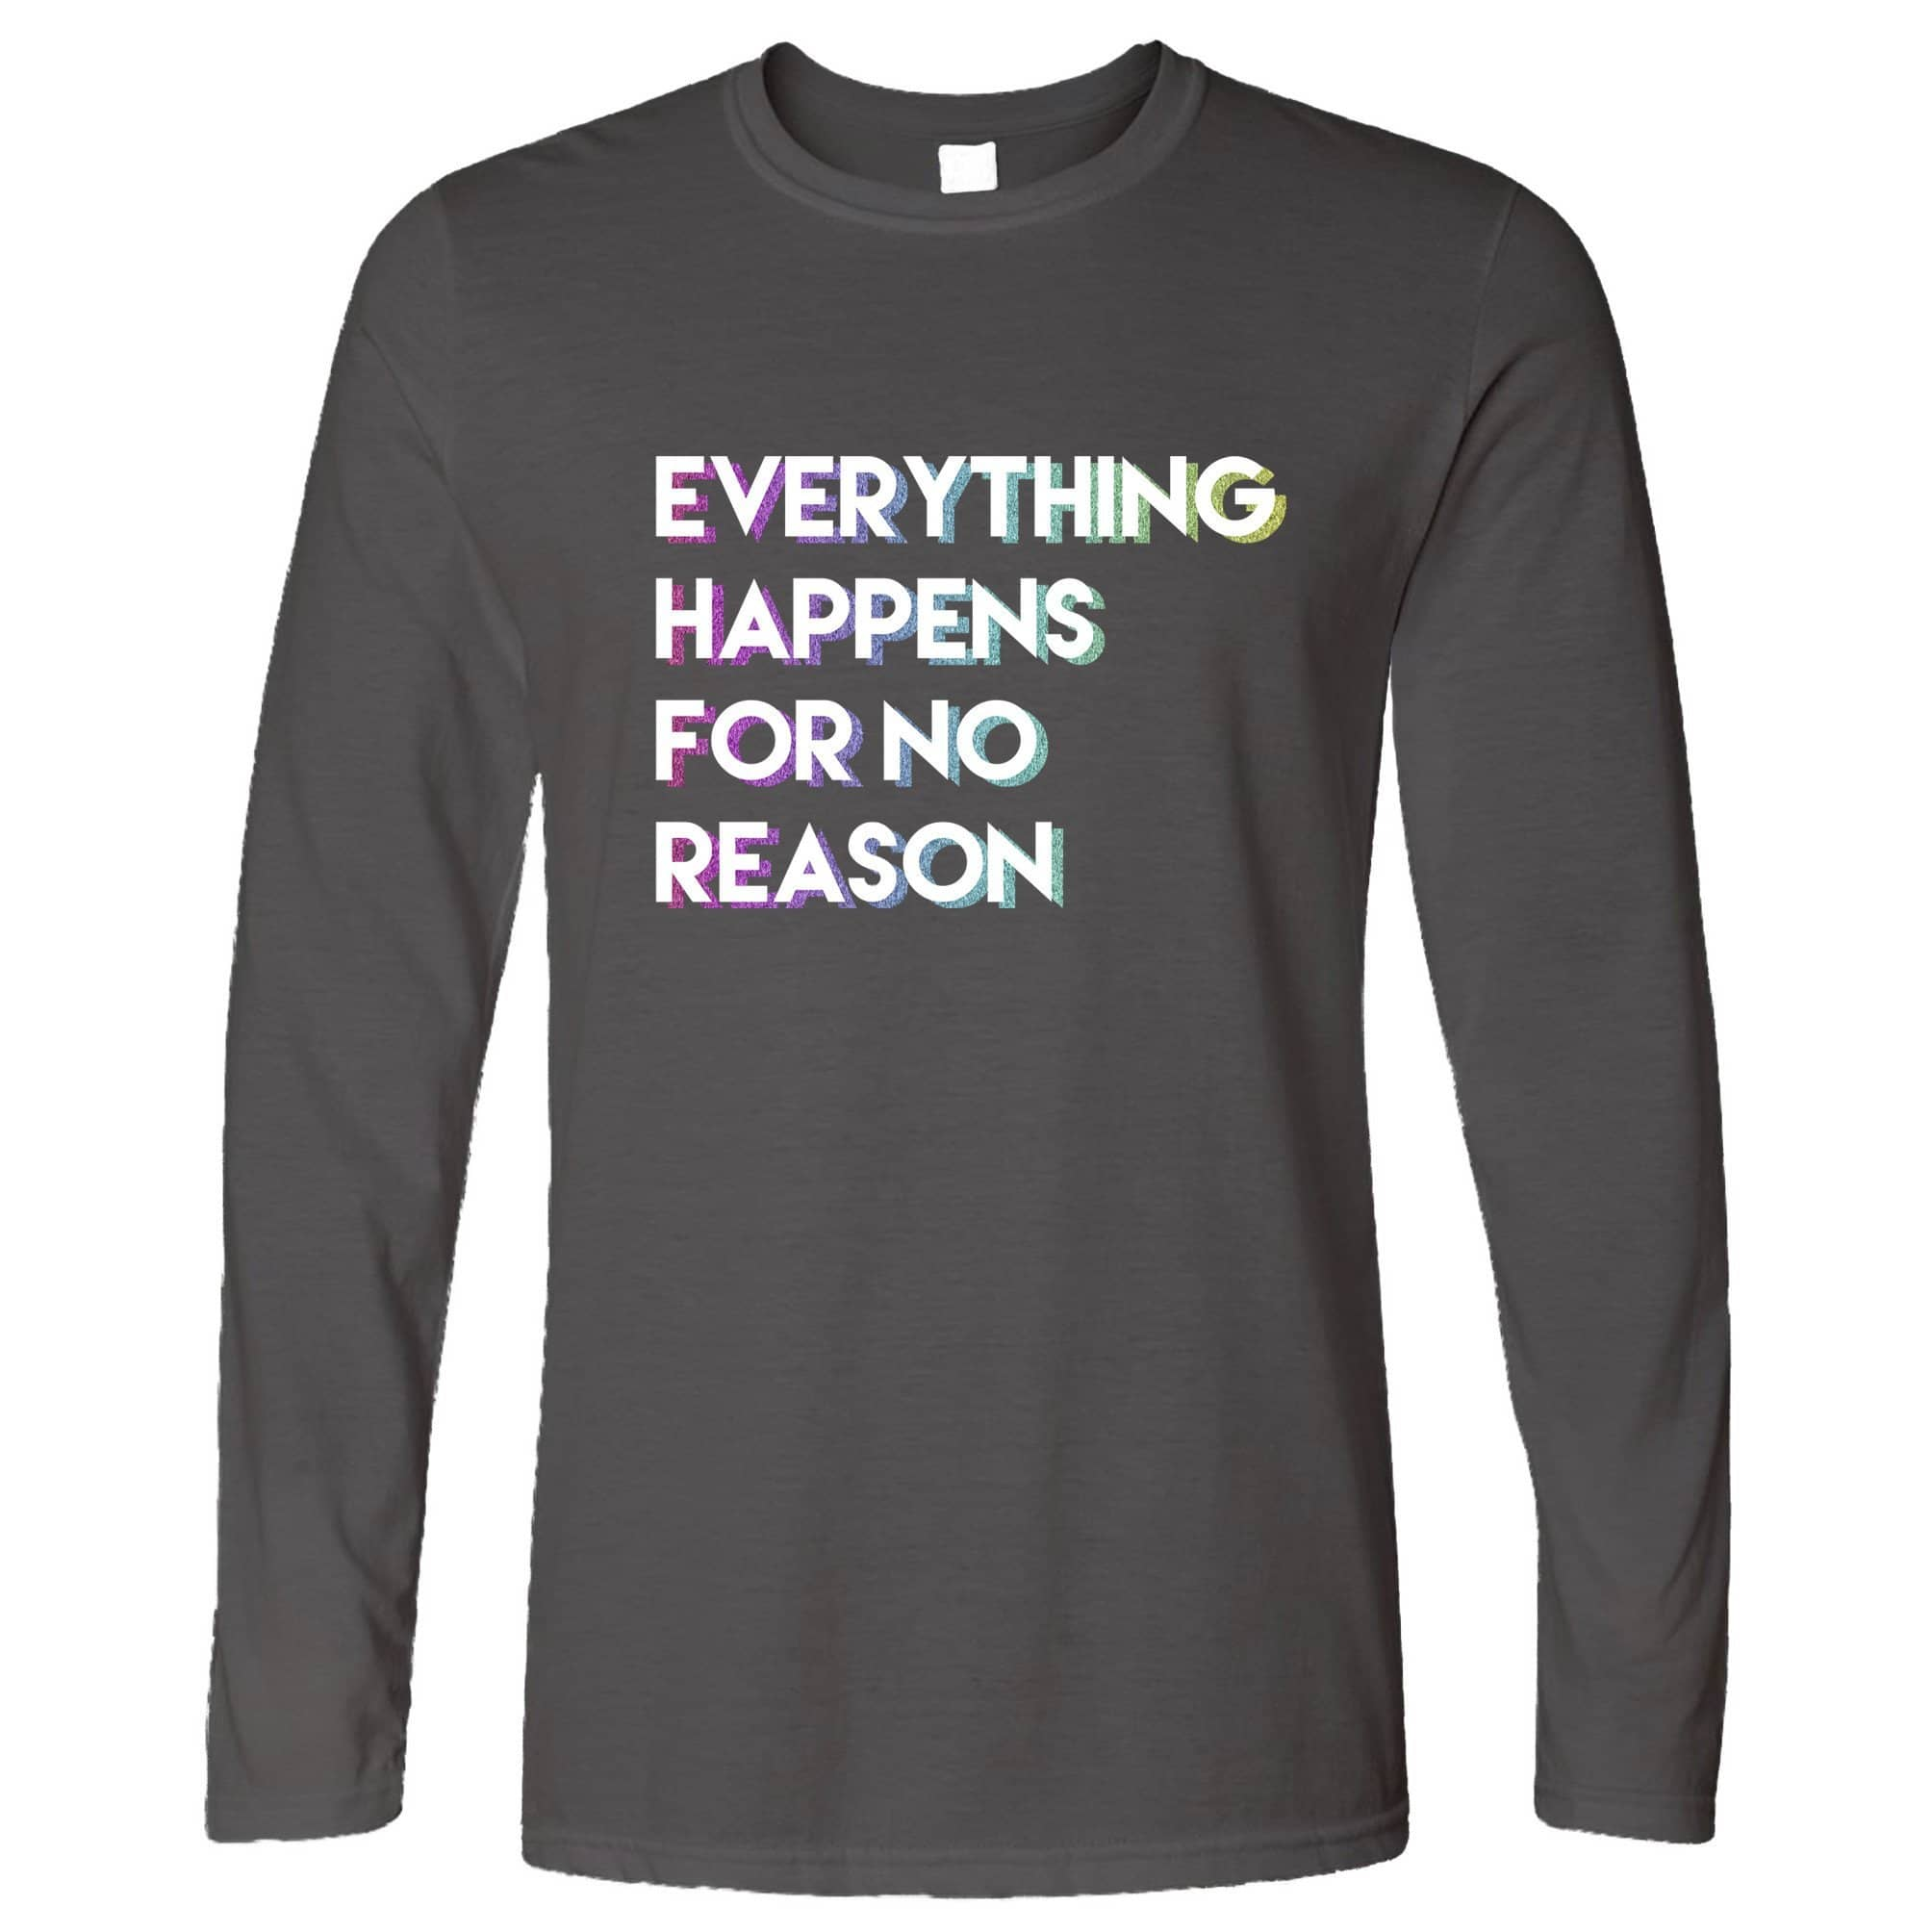 Joke Long Sleeve Everything Happens For No Reason Slogan T-Shirt